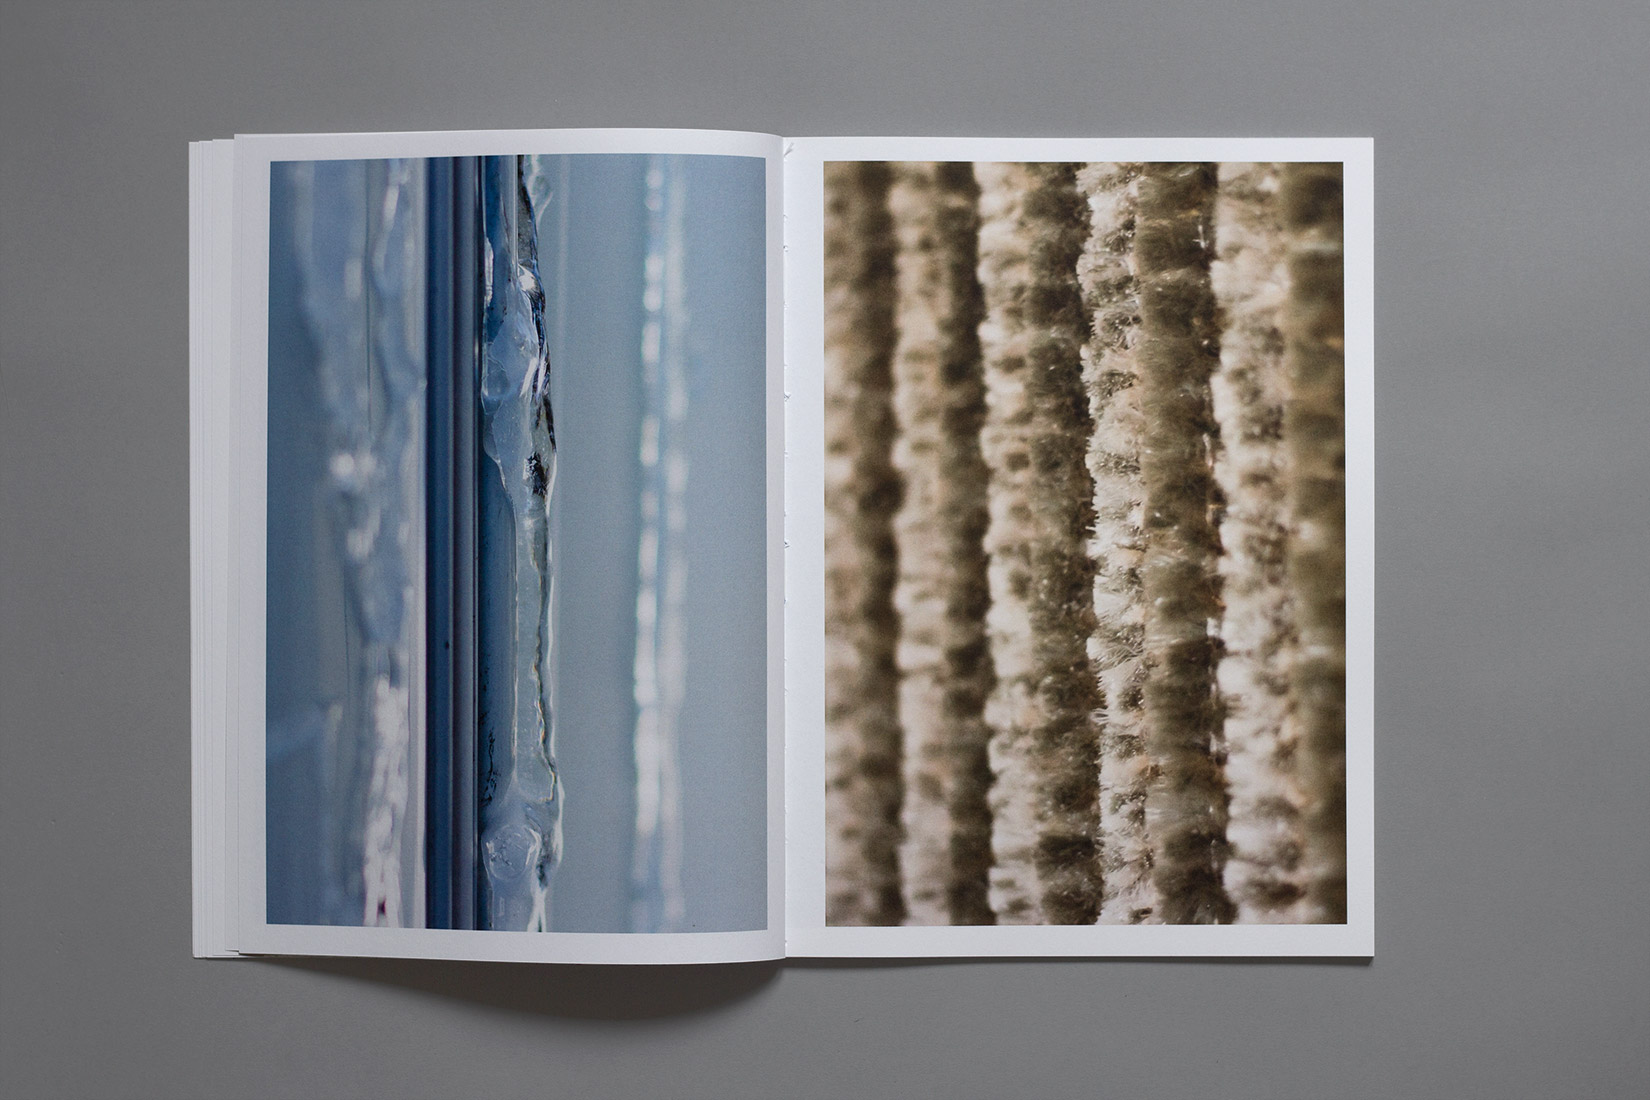 Les Brenets - Camping, ice, curtains, details, book, photography